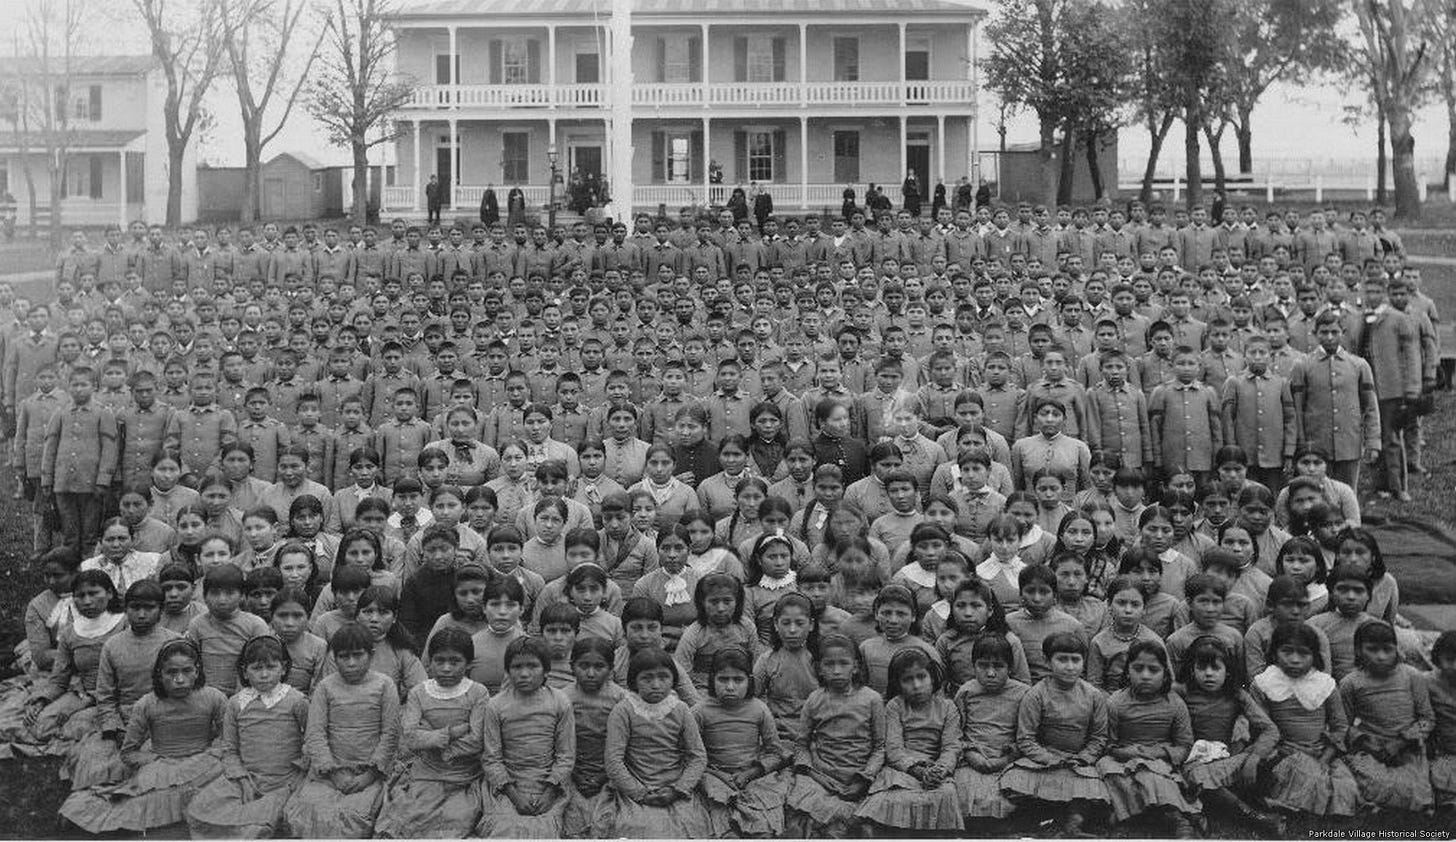 American Genocide: the violent removal of Native American children from their families and culture.